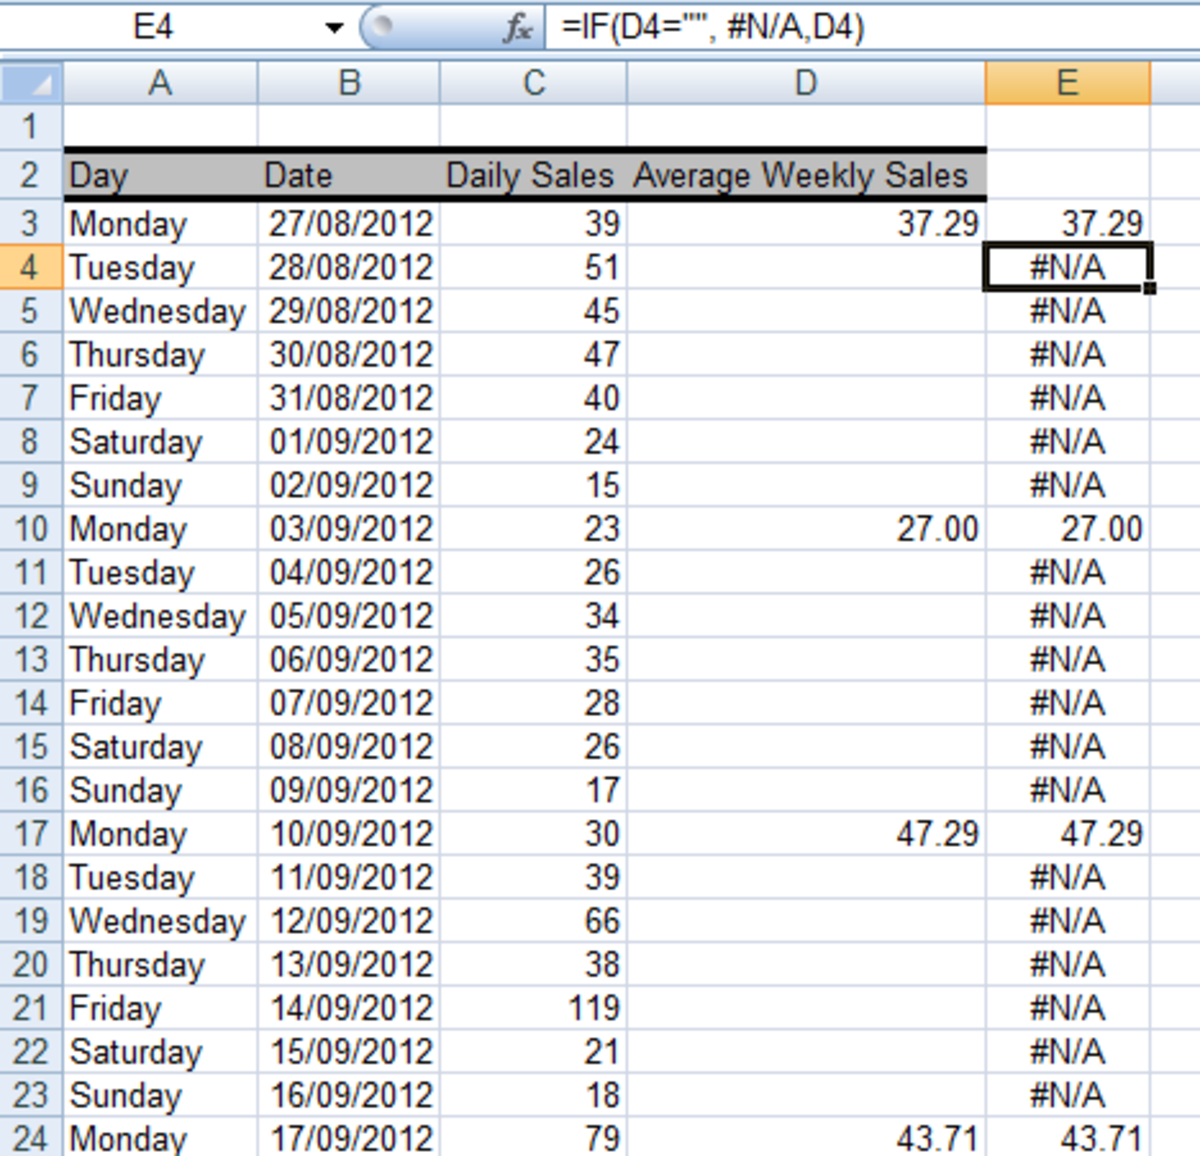 Ediblewildsus  Mesmerizing How To Get Excel  And  To Ignore Empty Cells In A Chart Or  With Remarkable Using The If Function In A Formula To Convert Empty Cells To Na With Archaic Cos In Excel Also Jobs Using Excel In Addition Excel Vba Not And Create An Excel Form As Well As Excel Test For Interview Sample Additionally Ms Excel Free From Turbofuturecom With Ediblewildsus  Remarkable How To Get Excel  And  To Ignore Empty Cells In A Chart Or  With Archaic Using The If Function In A Formula To Convert Empty Cells To Na And Mesmerizing Cos In Excel Also Jobs Using Excel In Addition Excel Vba Not From Turbofuturecom